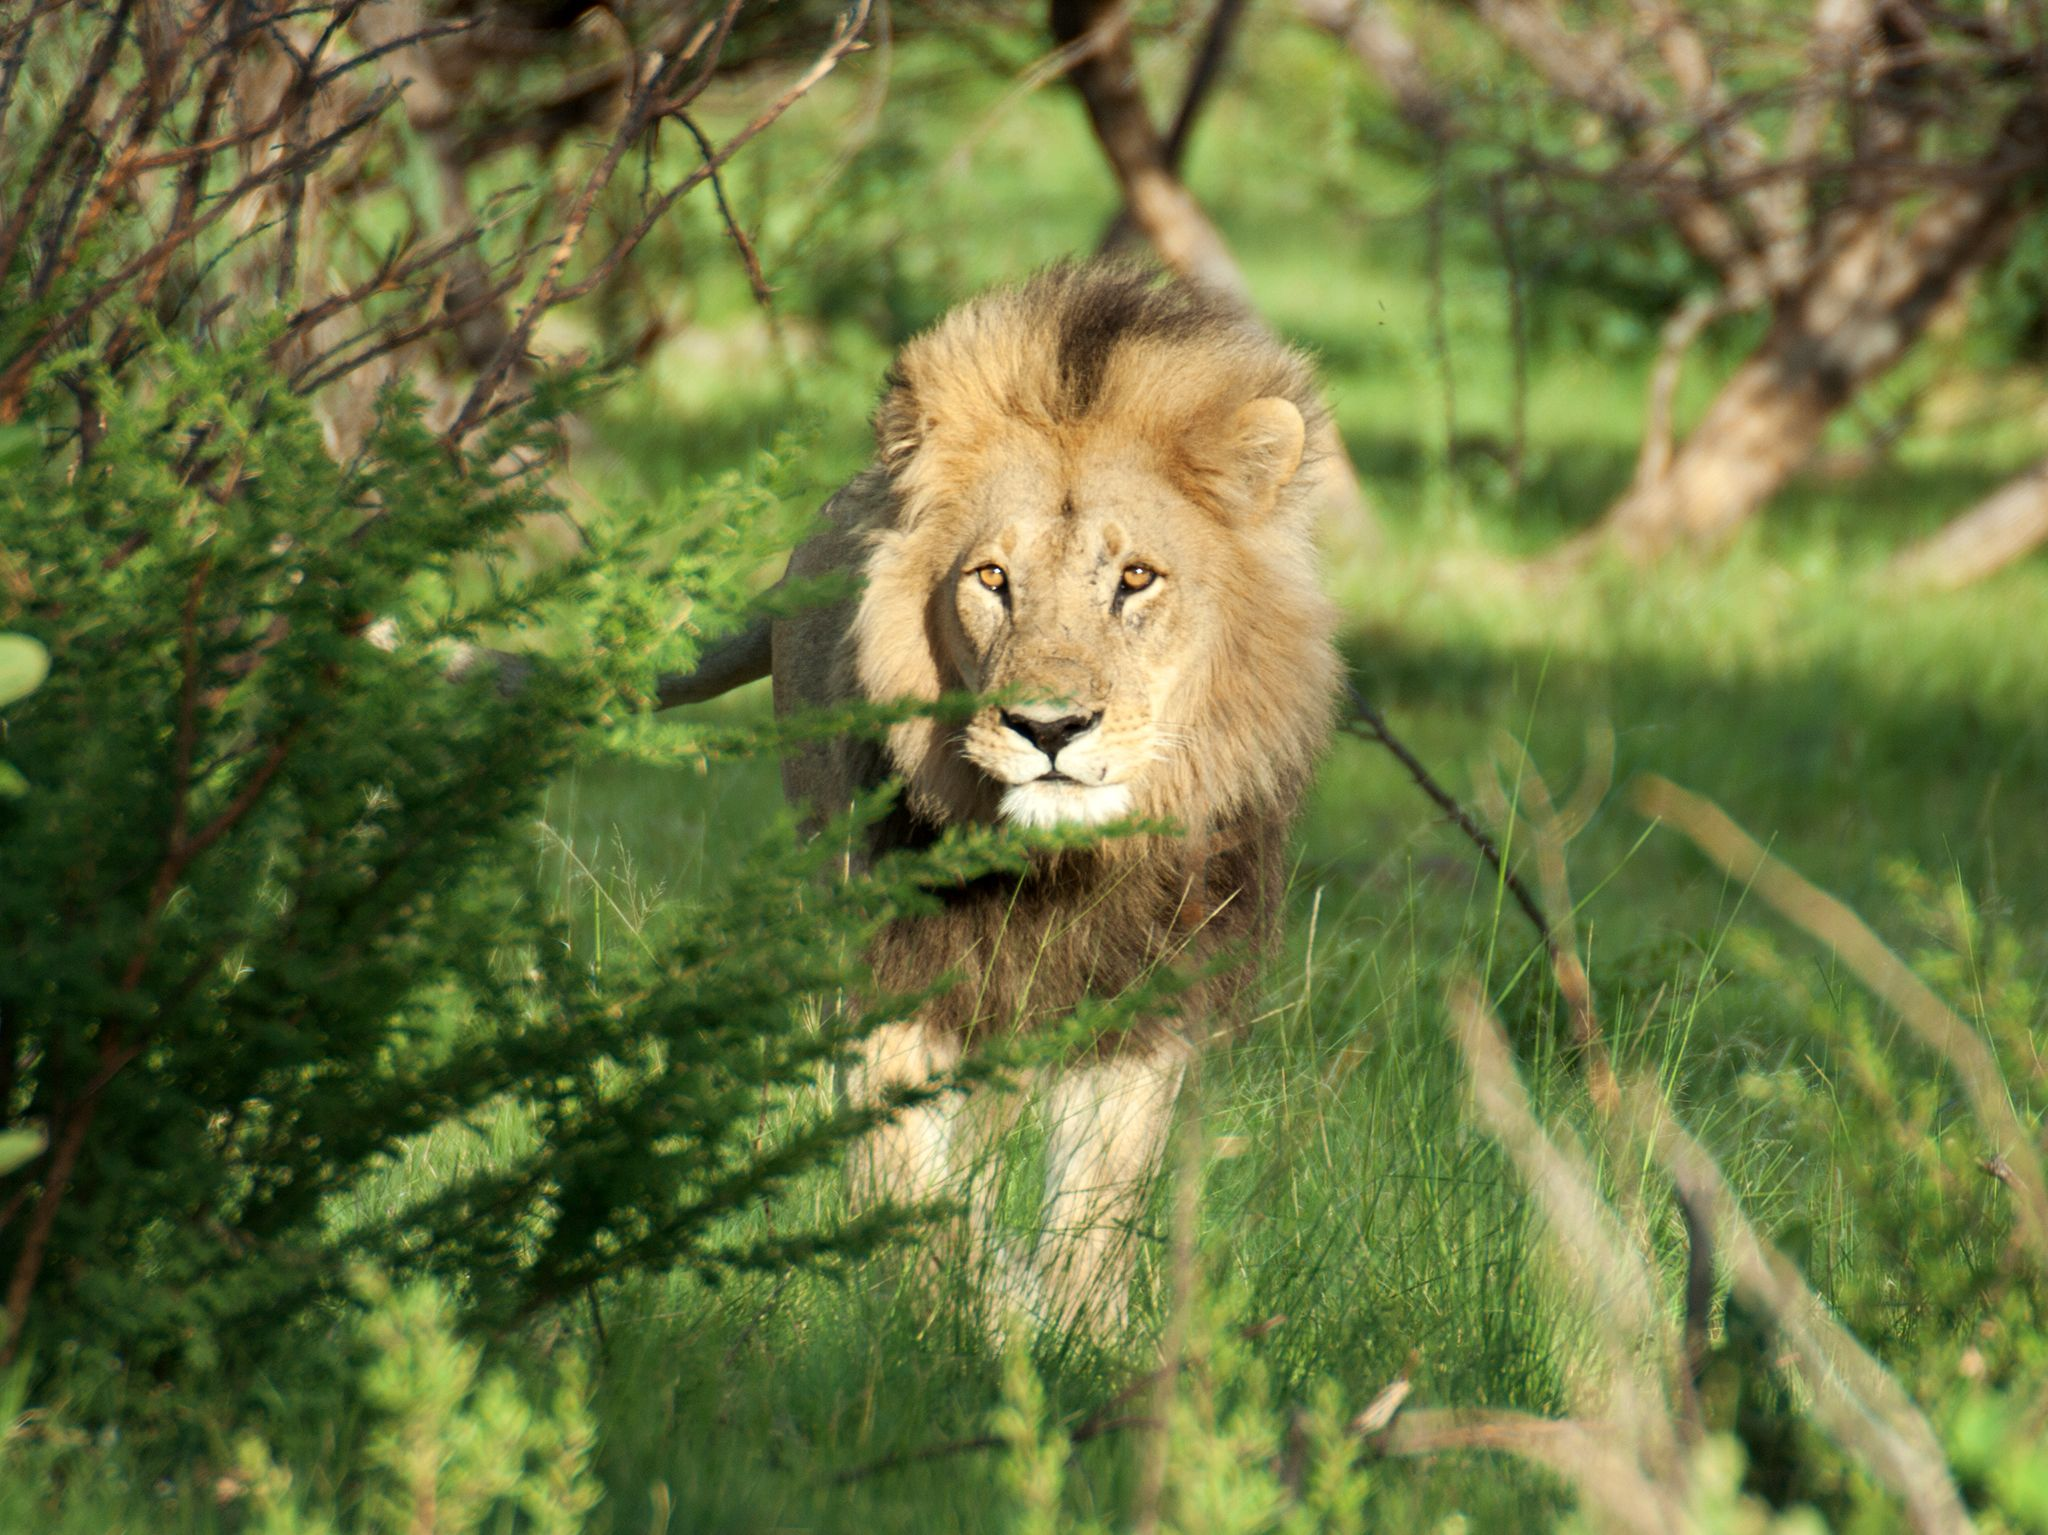 Rwanda: Male lion in lush Rwanda grassland. This image is from Return of the Lion. [Photo of the day - مارس 2020]